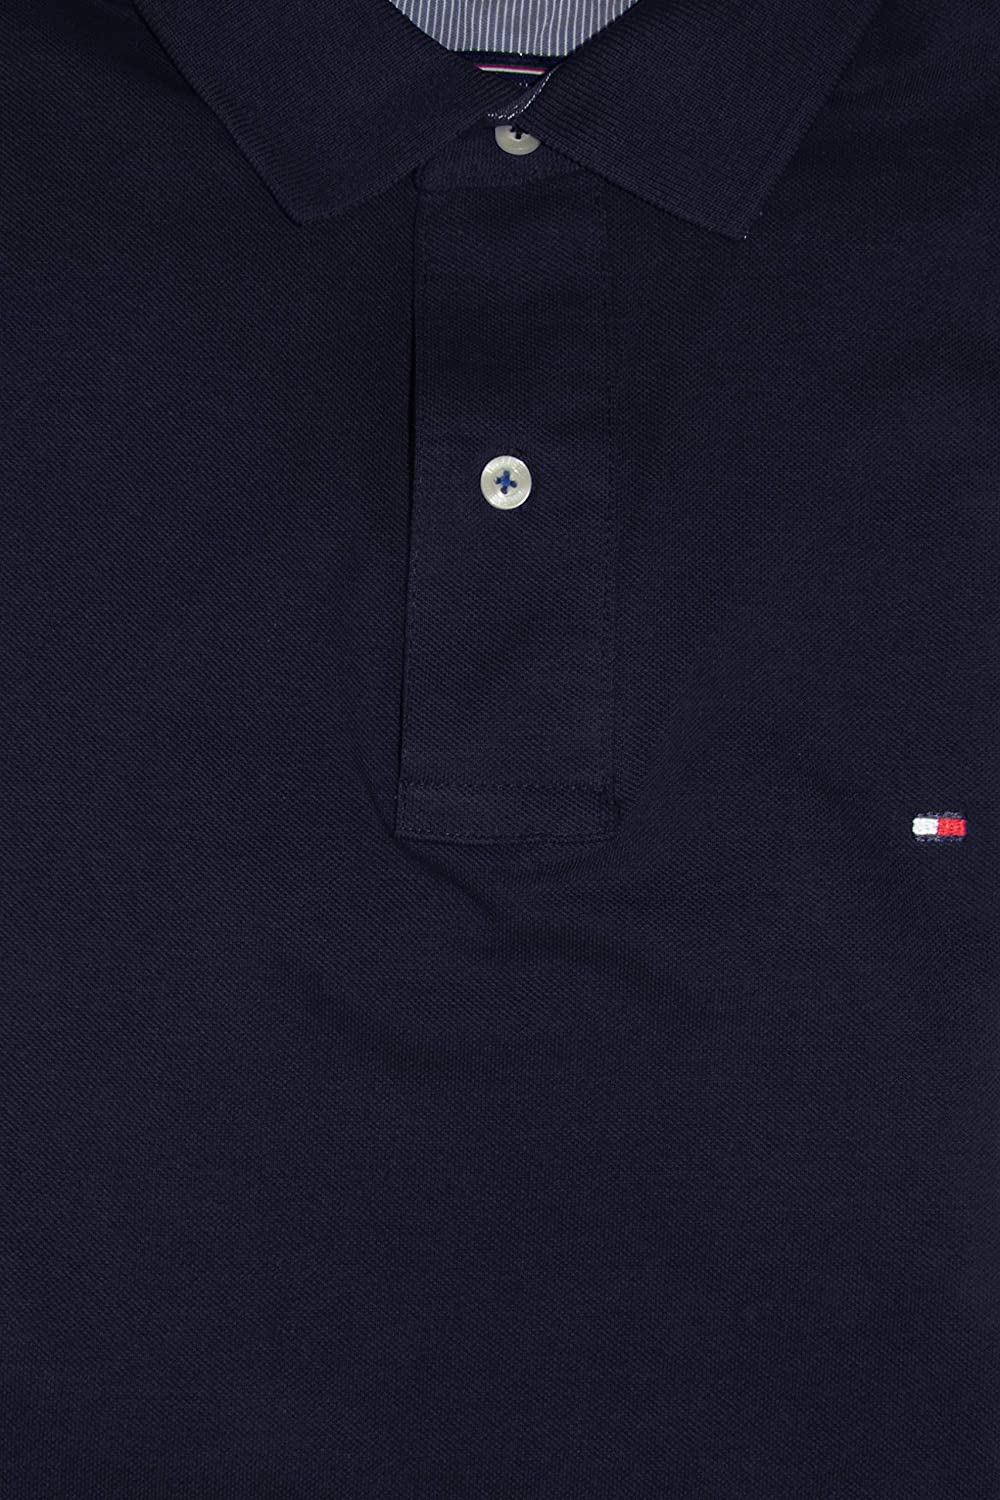 Tommy Hilfiger Two Ply Cotton Herren Poloshirt